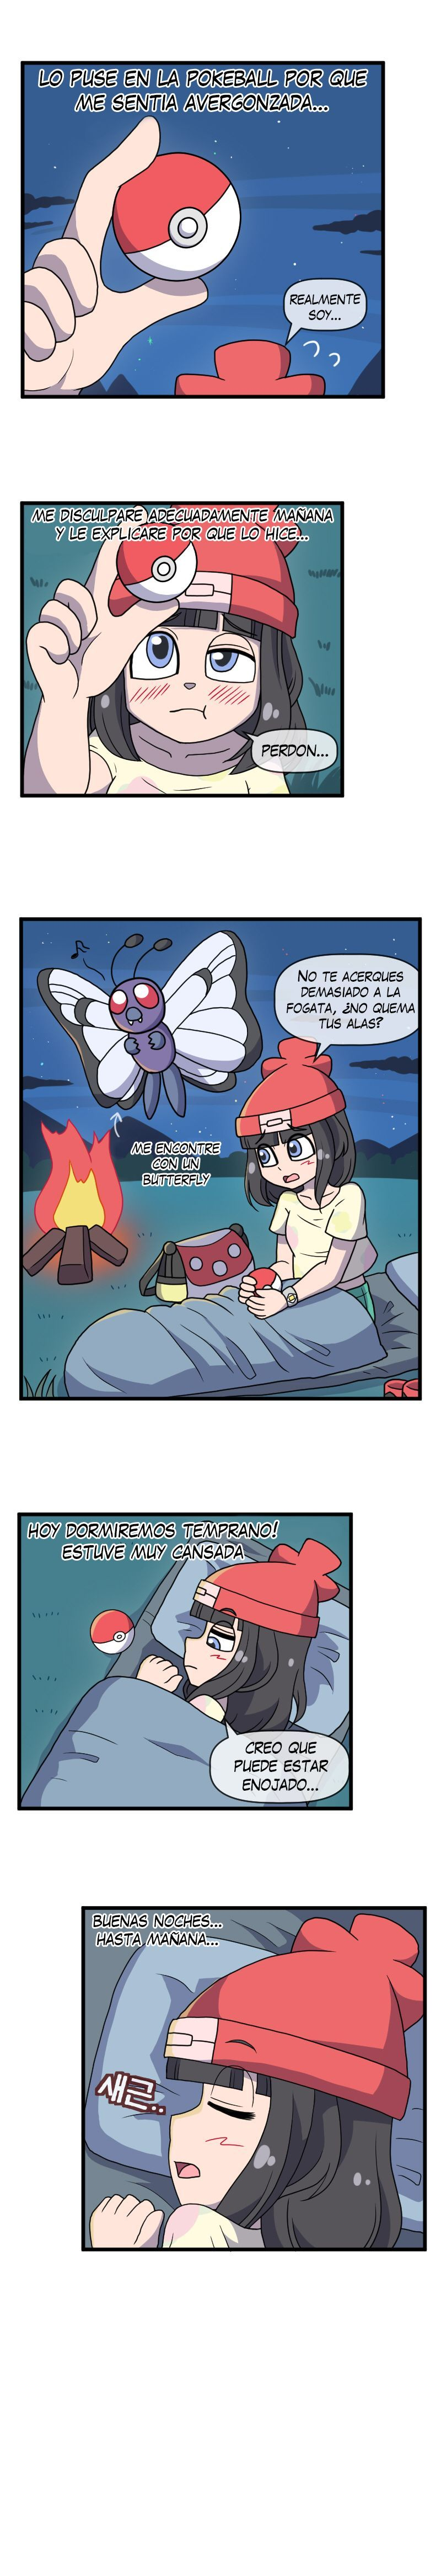 Pokemon-ADULT-Moon-05.jpg